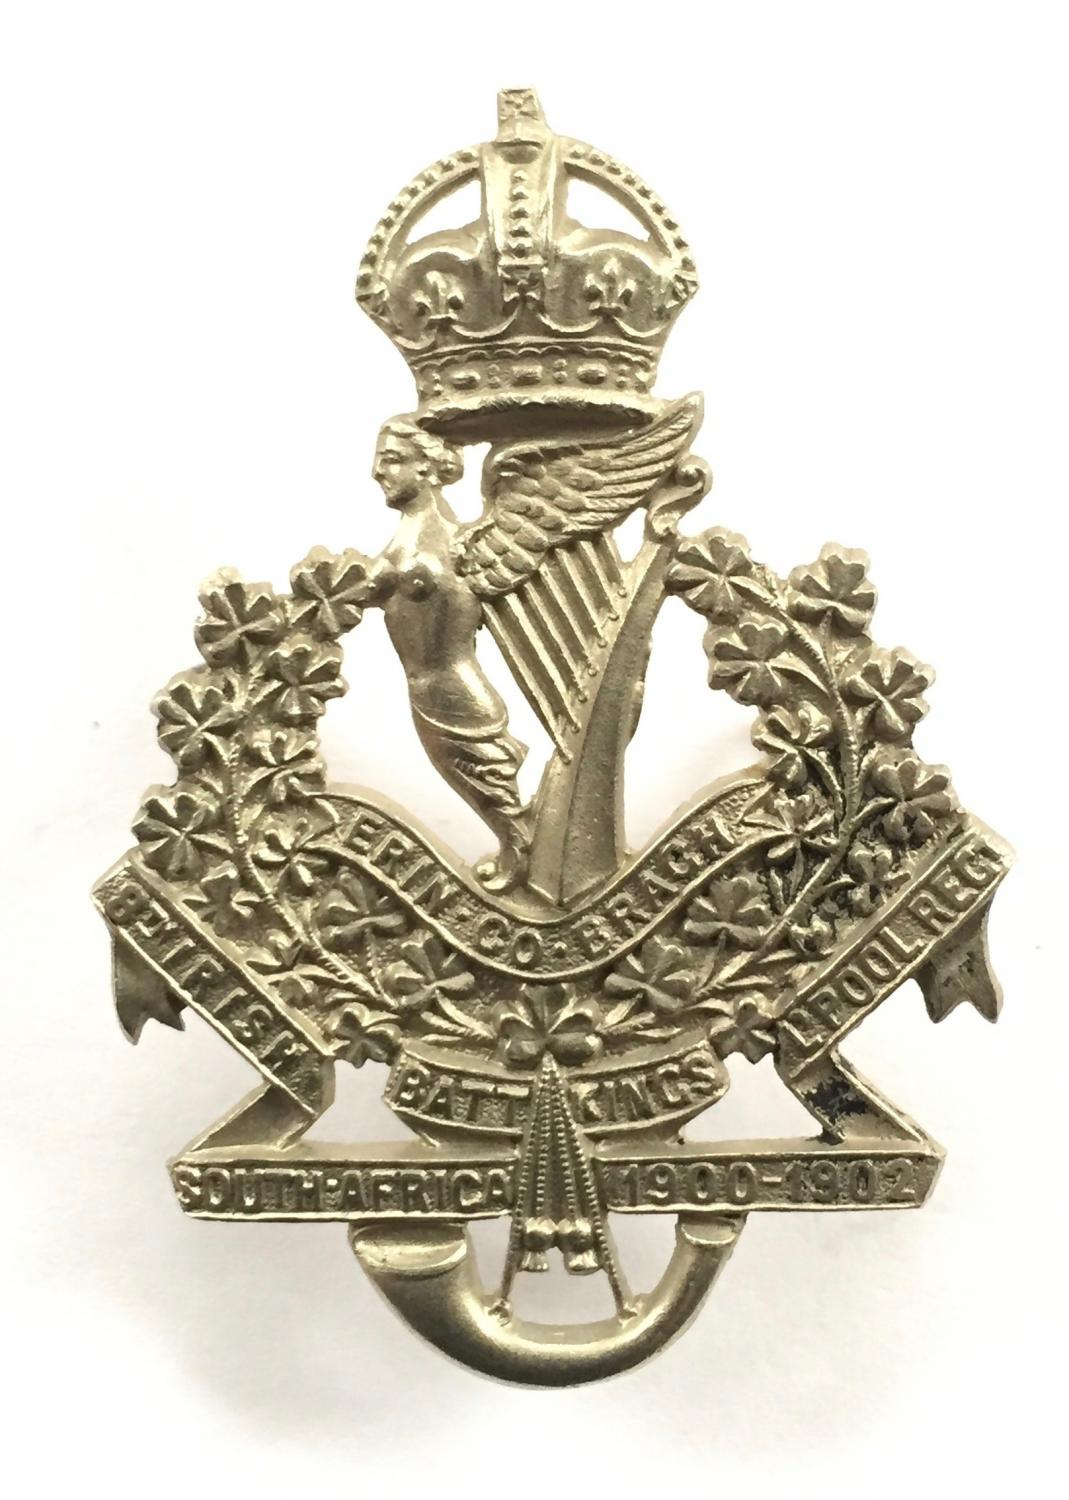 8th (Irish) King's Liverpool cap badge